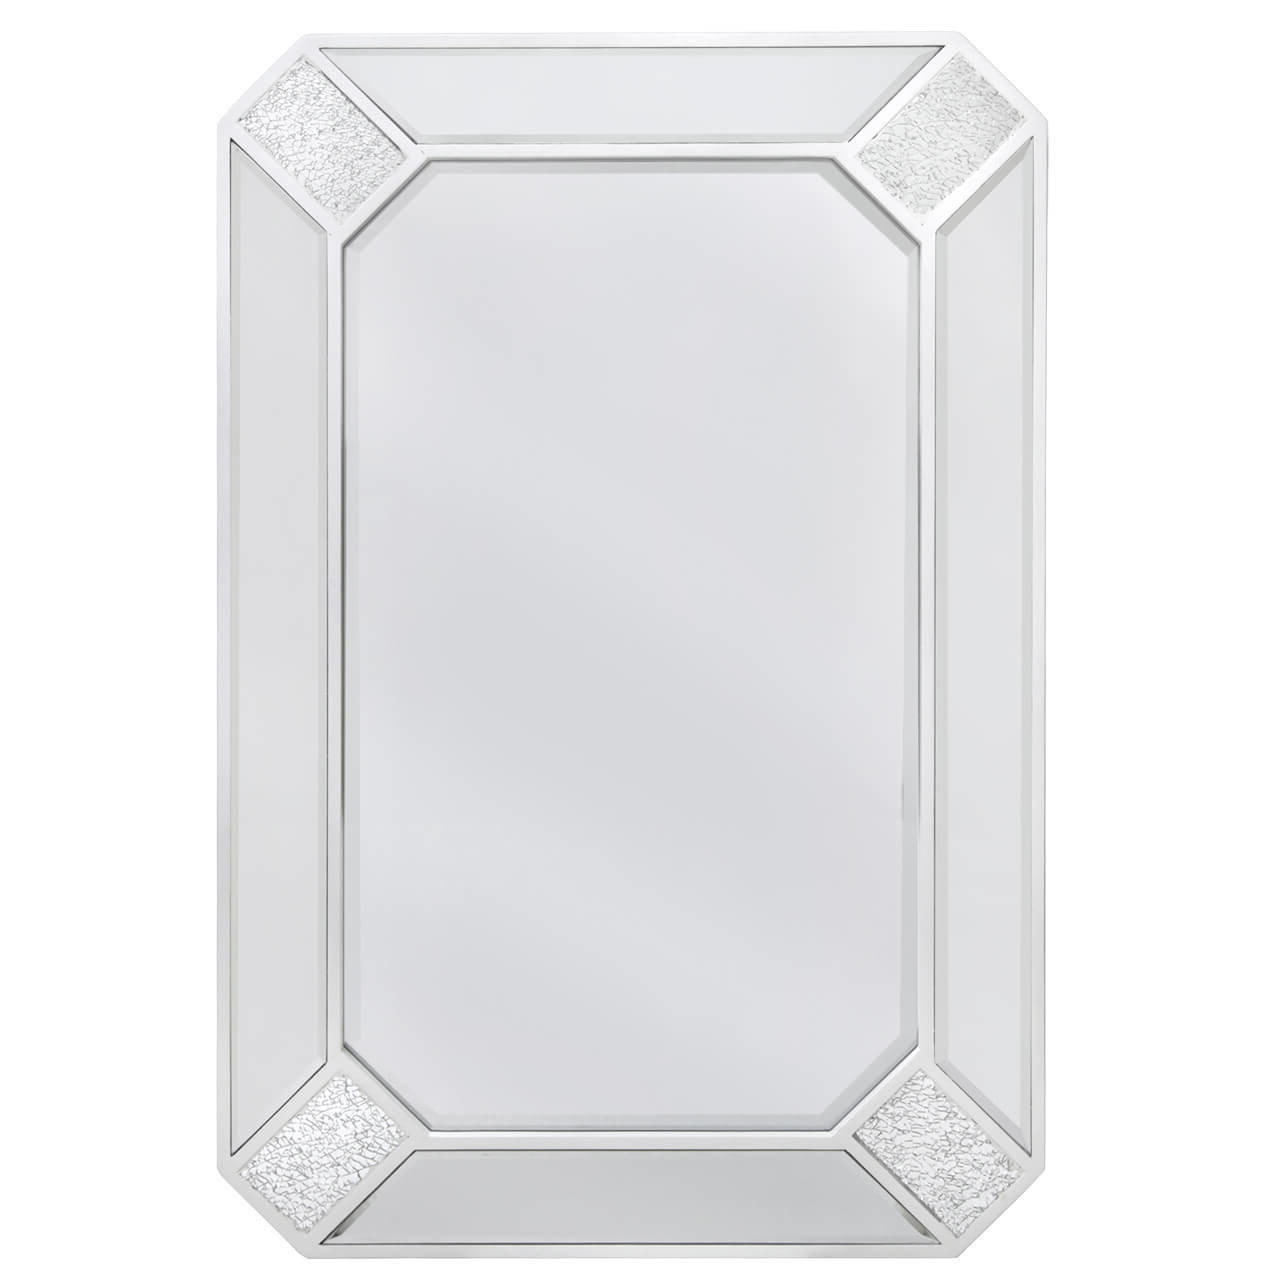 Current Odessa Sparkle Wall Mirror For Sparkle Wall Mirrors (View 9 of 20)